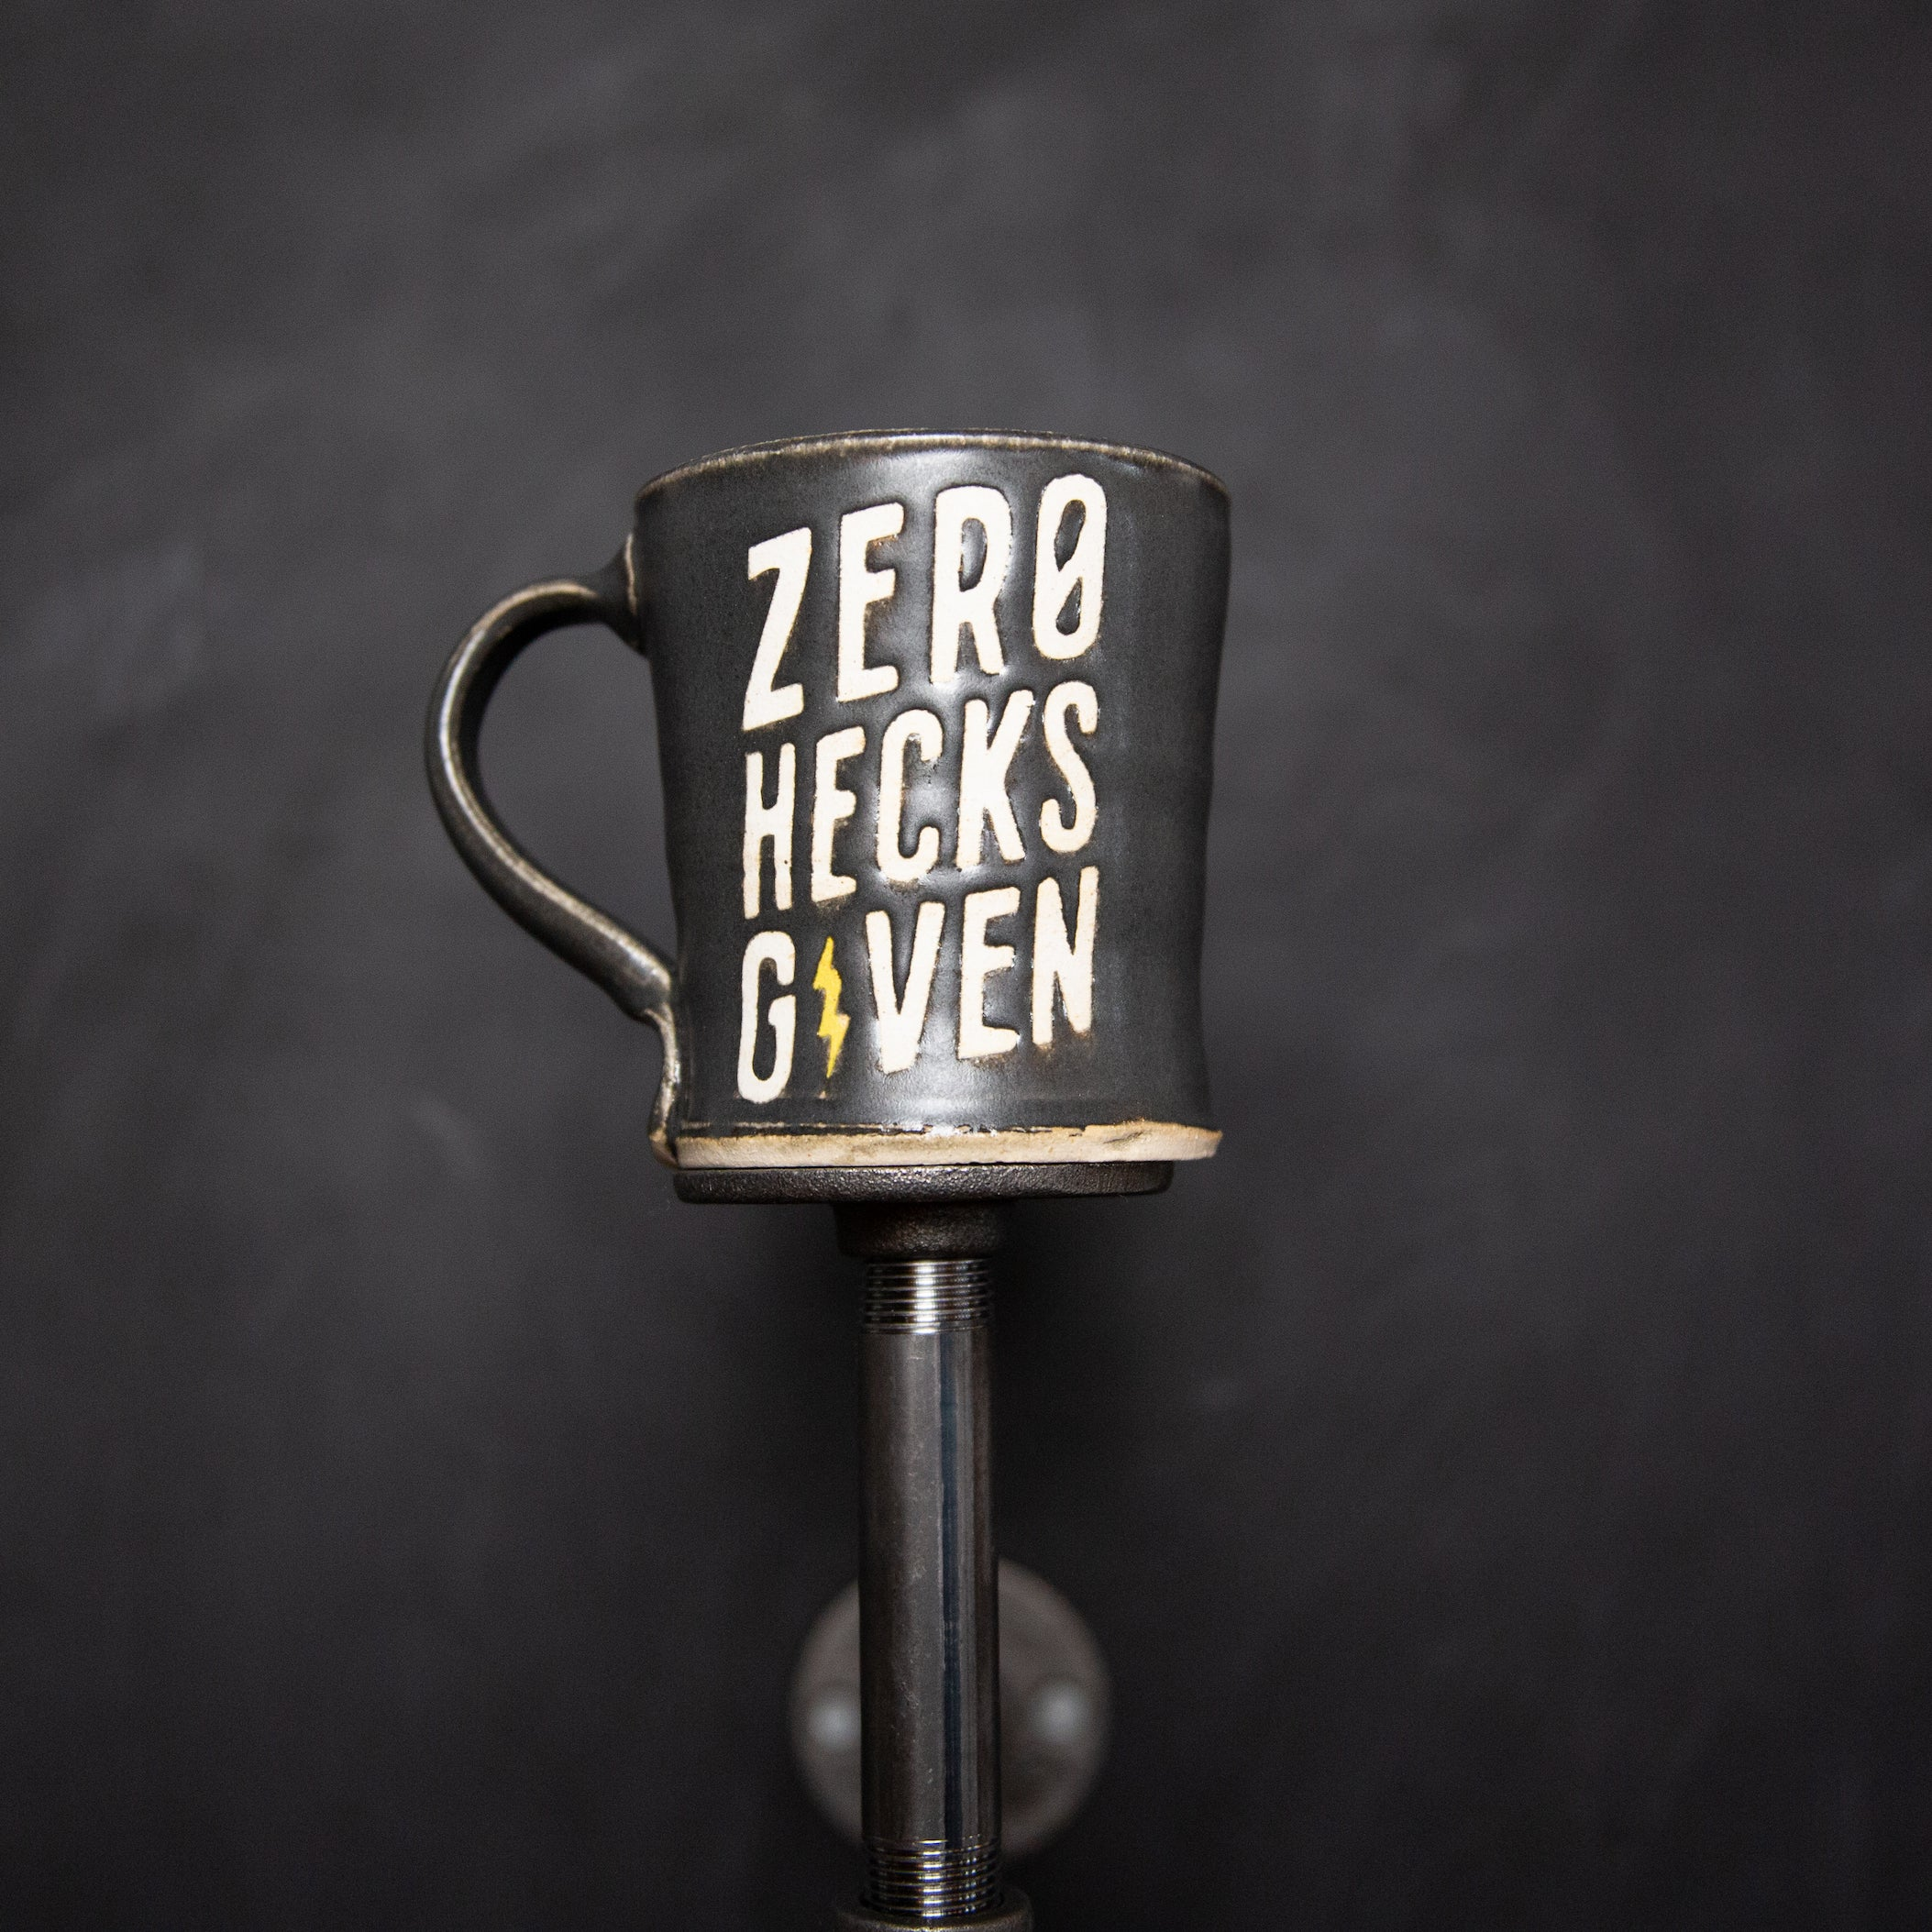 Zero Hecks Coffee Mug